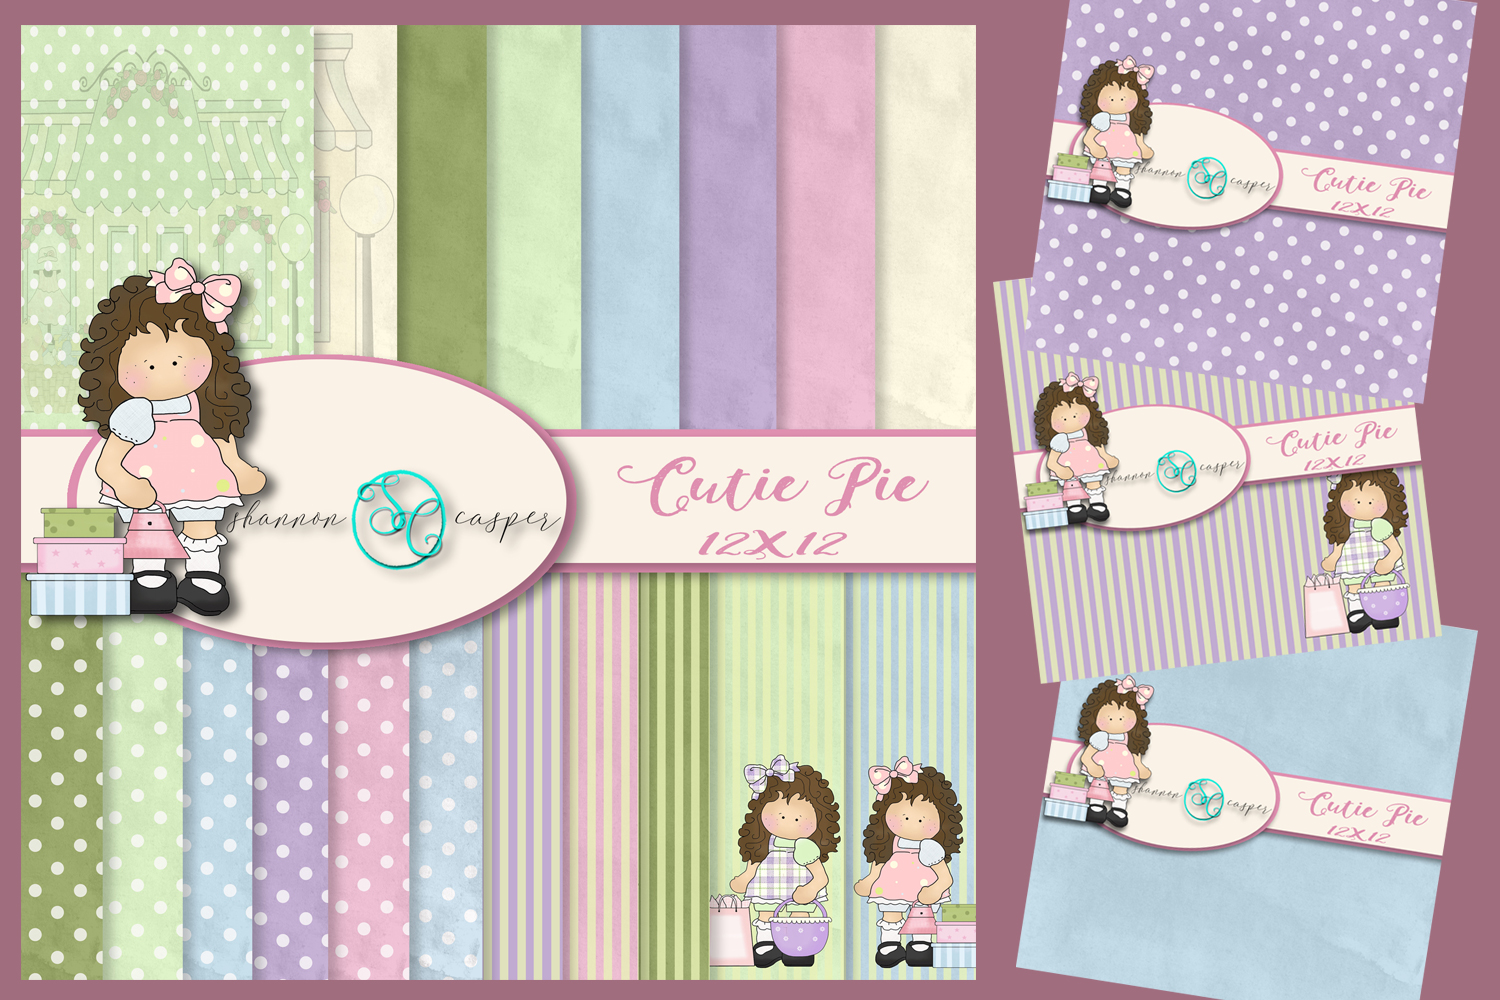 Little Girl ClipArt with Pastel Colors |Digital Paper 12x12 example image 1